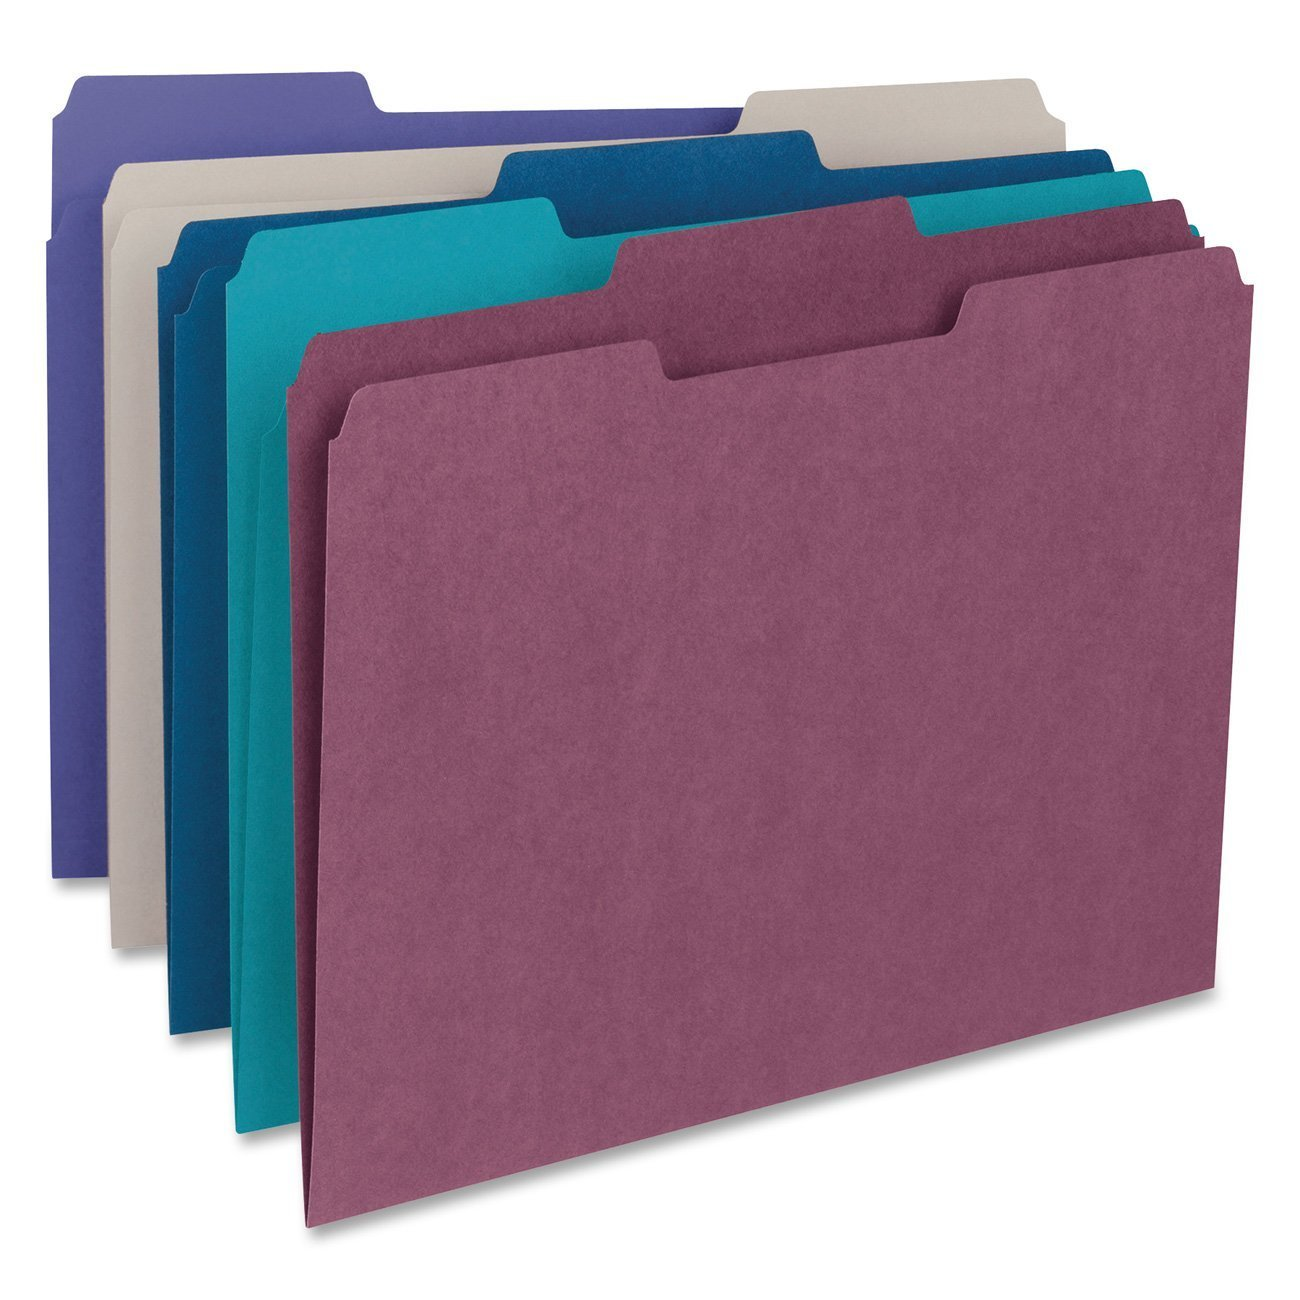 Smead File Folder, 1/3-Cut Tab, Letter Size, Assorted Colors, 100 per Box, (11948 - 3-Pack)